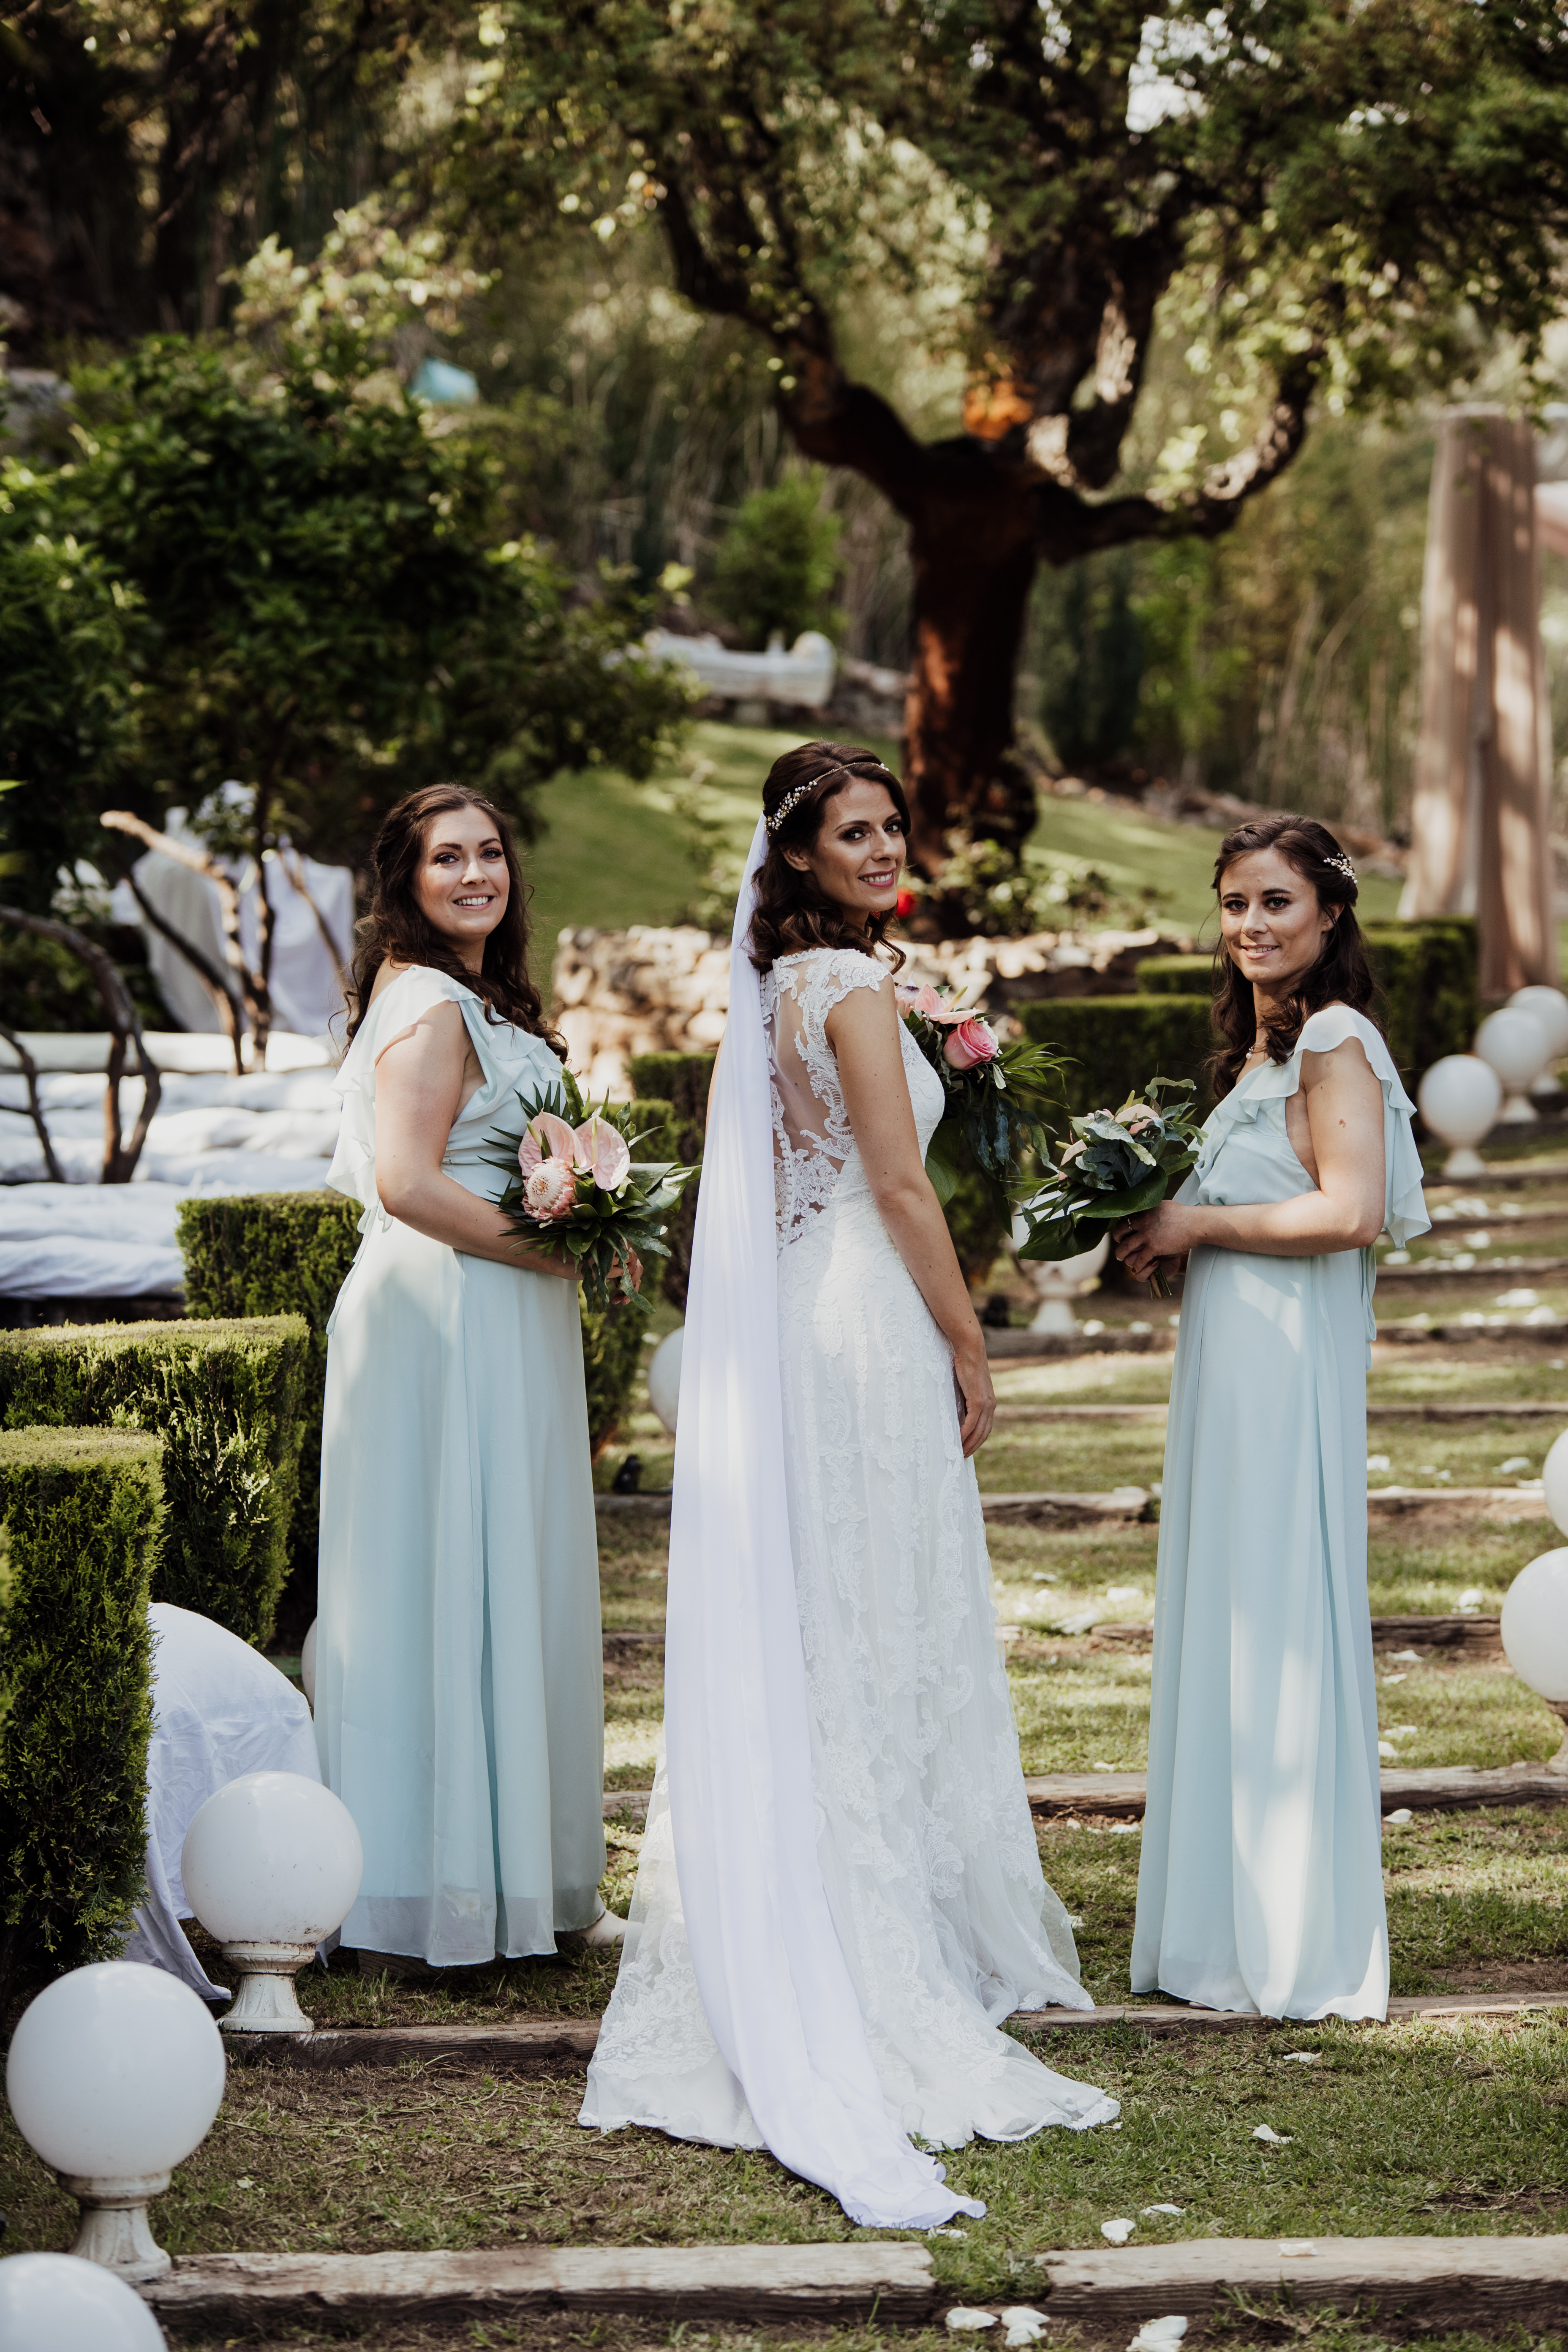 The beautiful bride and her bridesmaids in the unique villa gardens